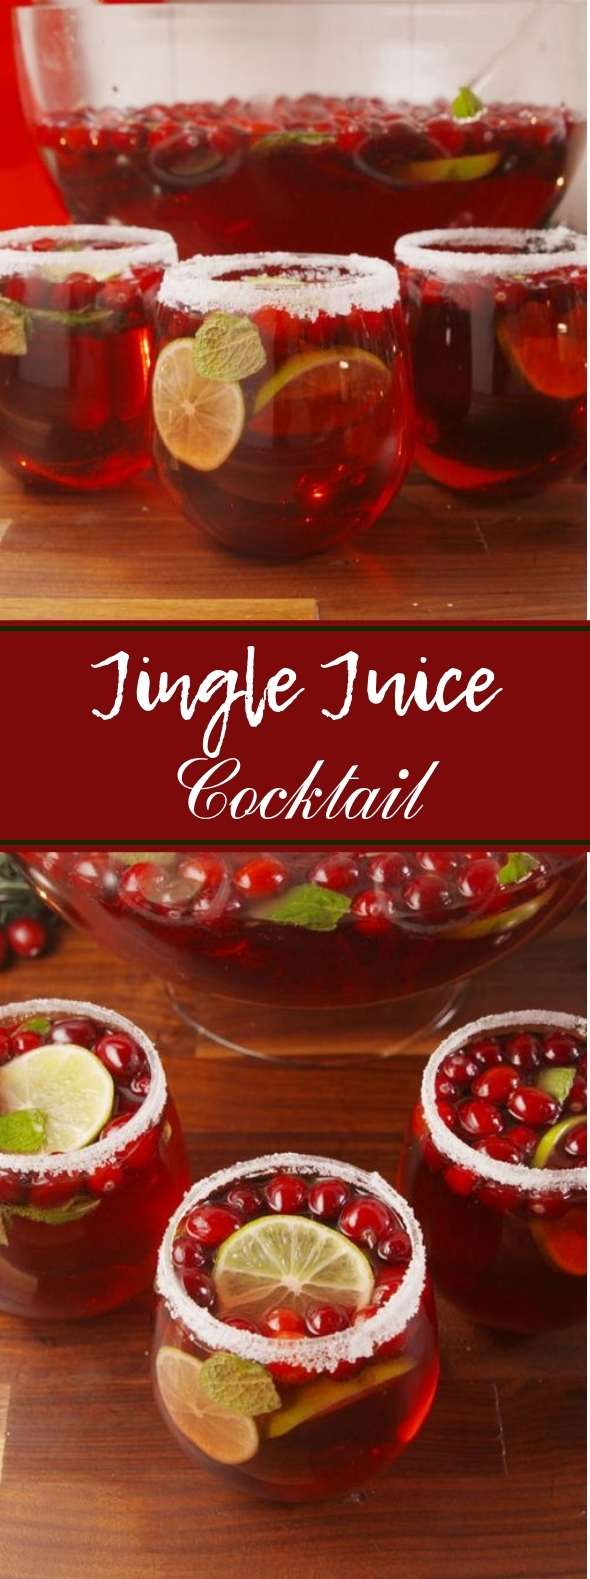 Jingle Juice Cocktail #christmas #cocktails